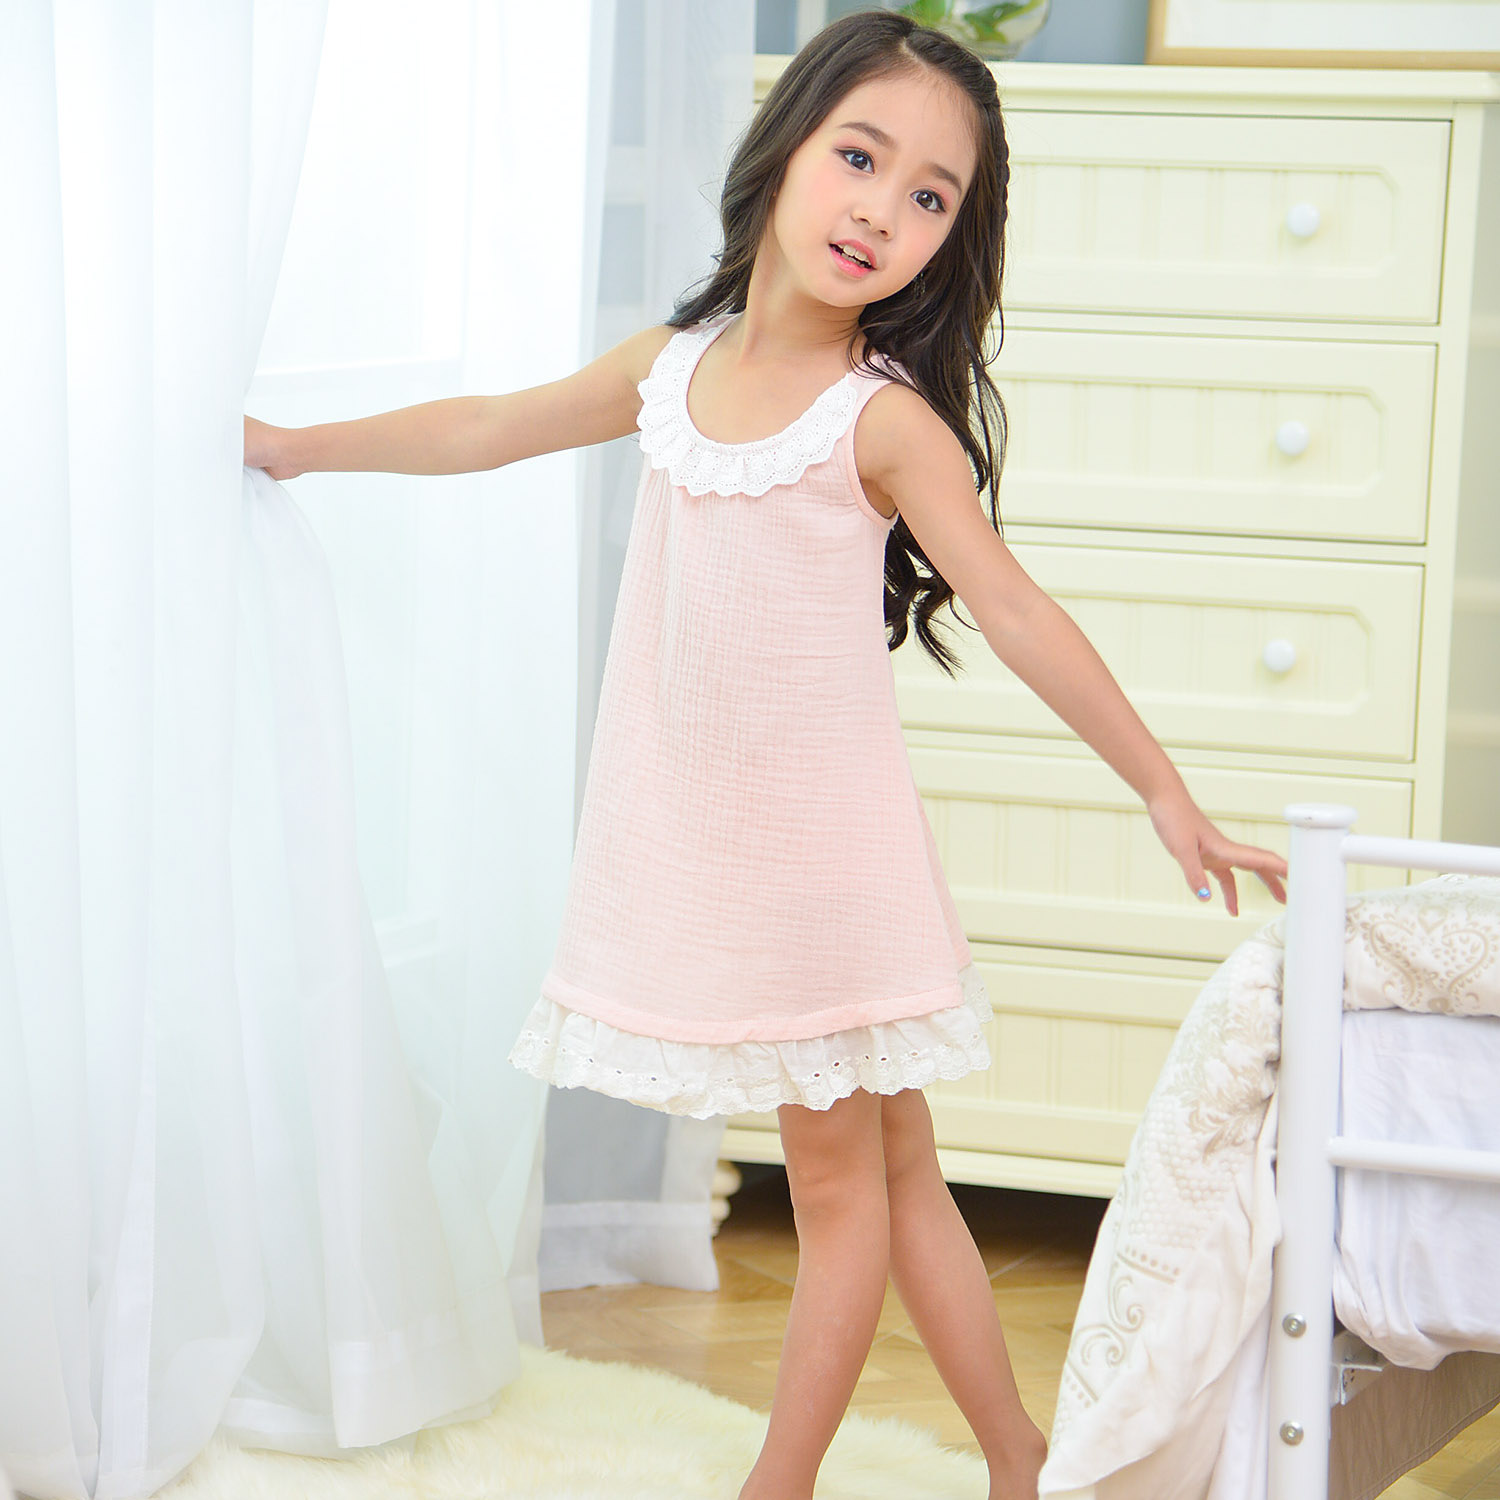 Buy Children baby cotton nightgown princess nightgown girls tracksuit  children  39 s sleepwear summer and autumn girls dress 1620 in Cheap Price  on ... 13a2da366